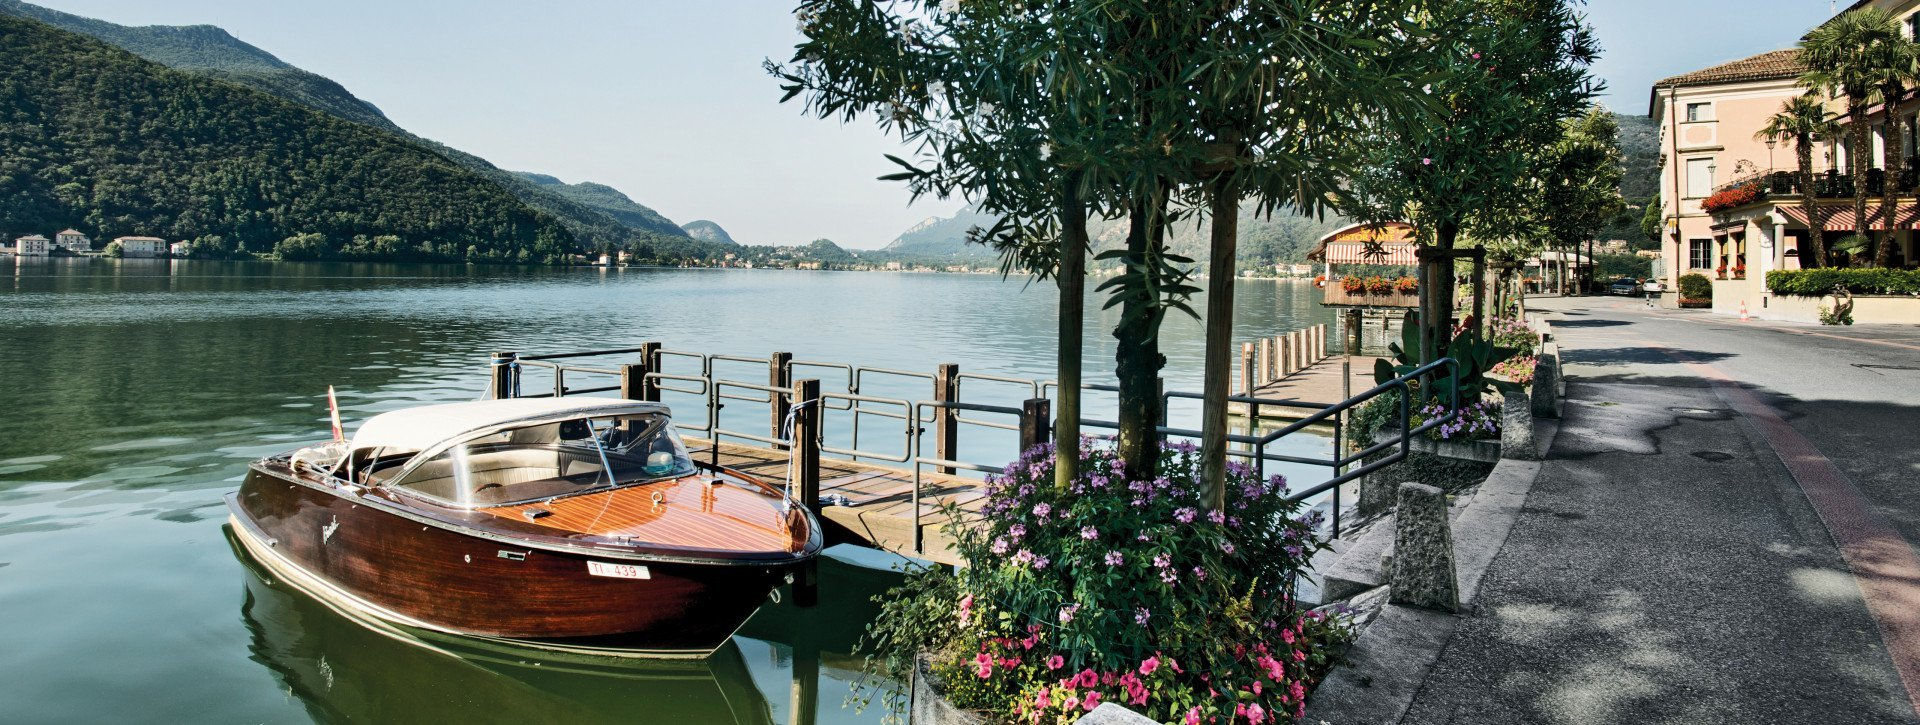 A wooden boat on the Lugano lake